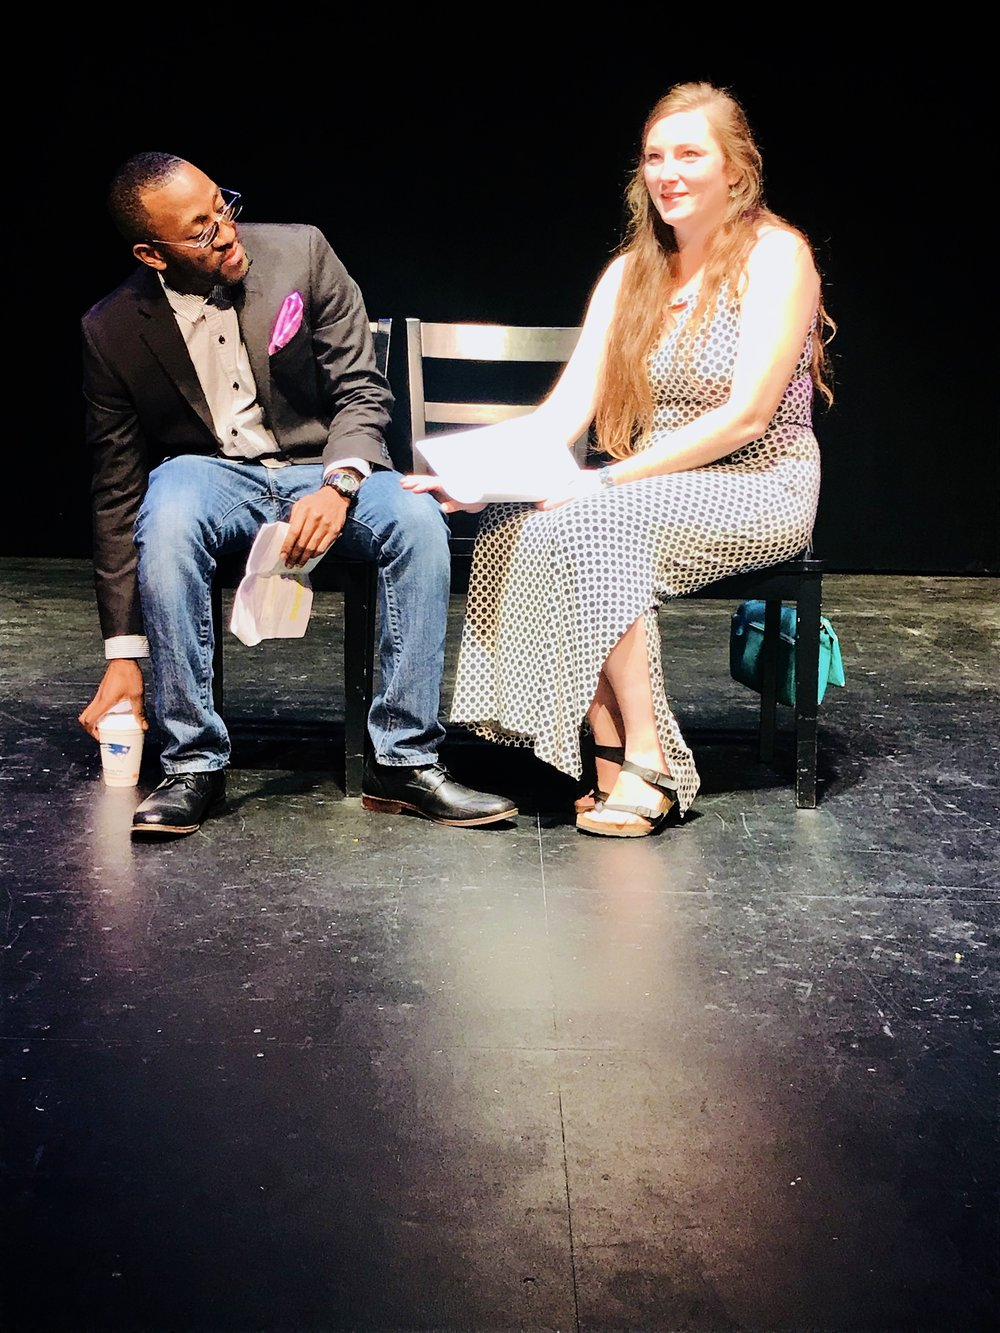 Jamaal Eversley (L) & Rachel Nagin (R), play the roles of Emmanuel and Rachelle in Caution, by Fabiola Decius, Our Voices XII.  Photo Credit: Kelly DuMar